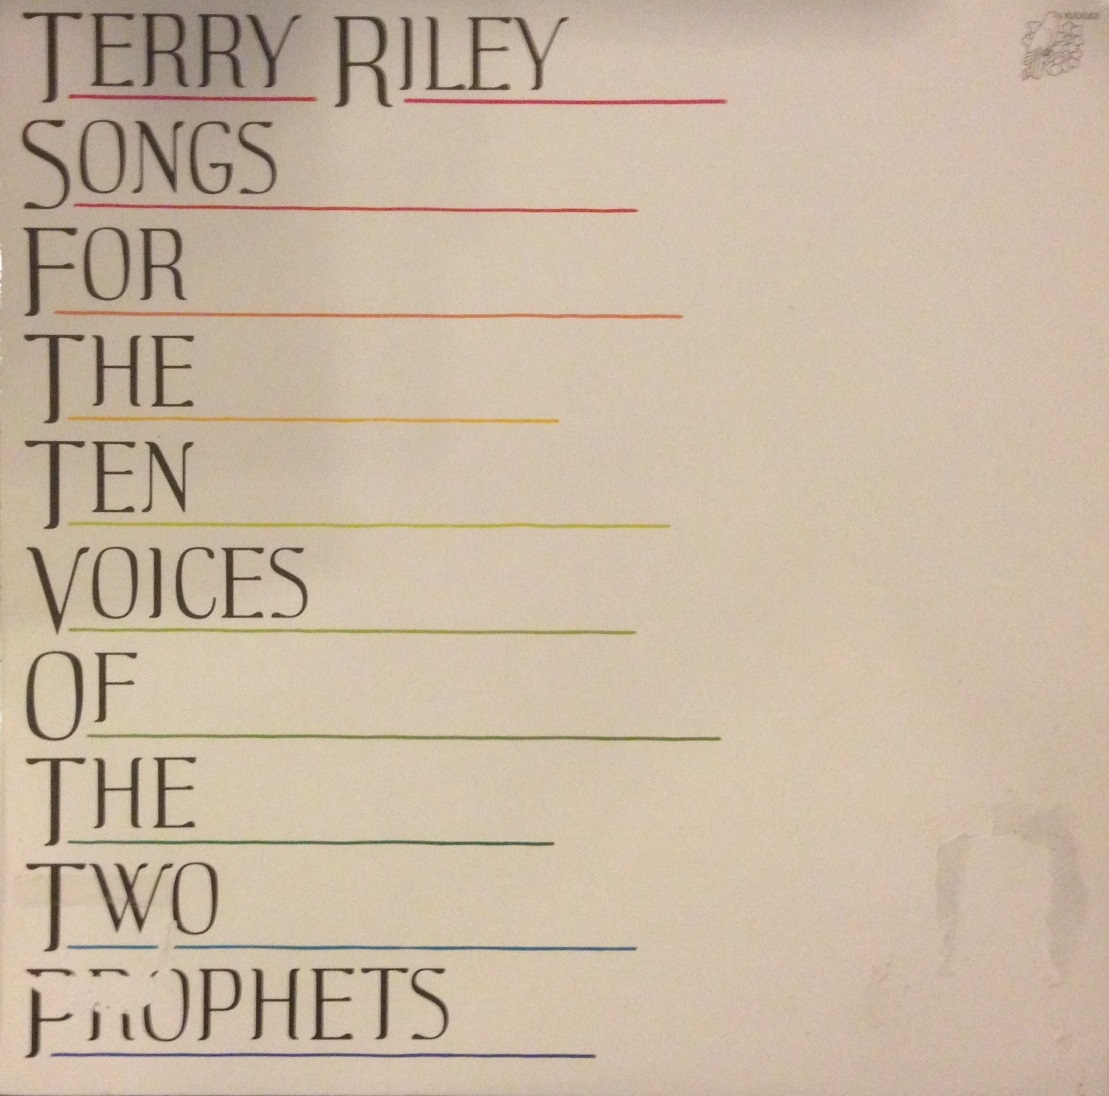 TERRY RILEY / SONGS FOR THE TEN VOICES OF THE TWO PROPHETS